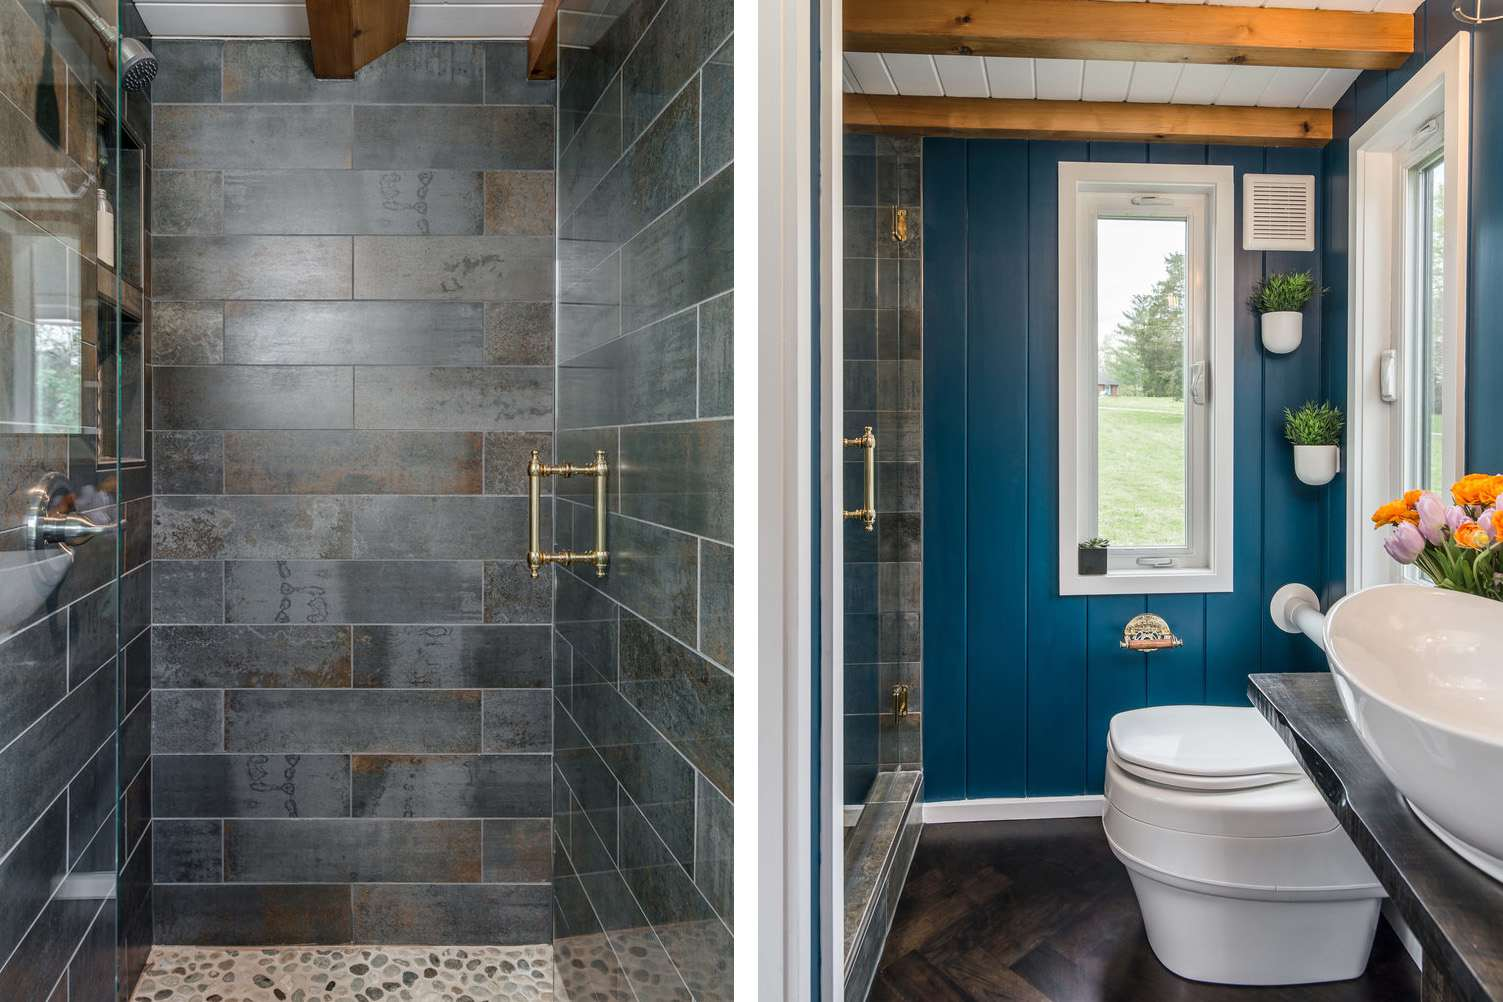 33 Small Shower Ideas For Tiny Homes And Tiny Bathrooms